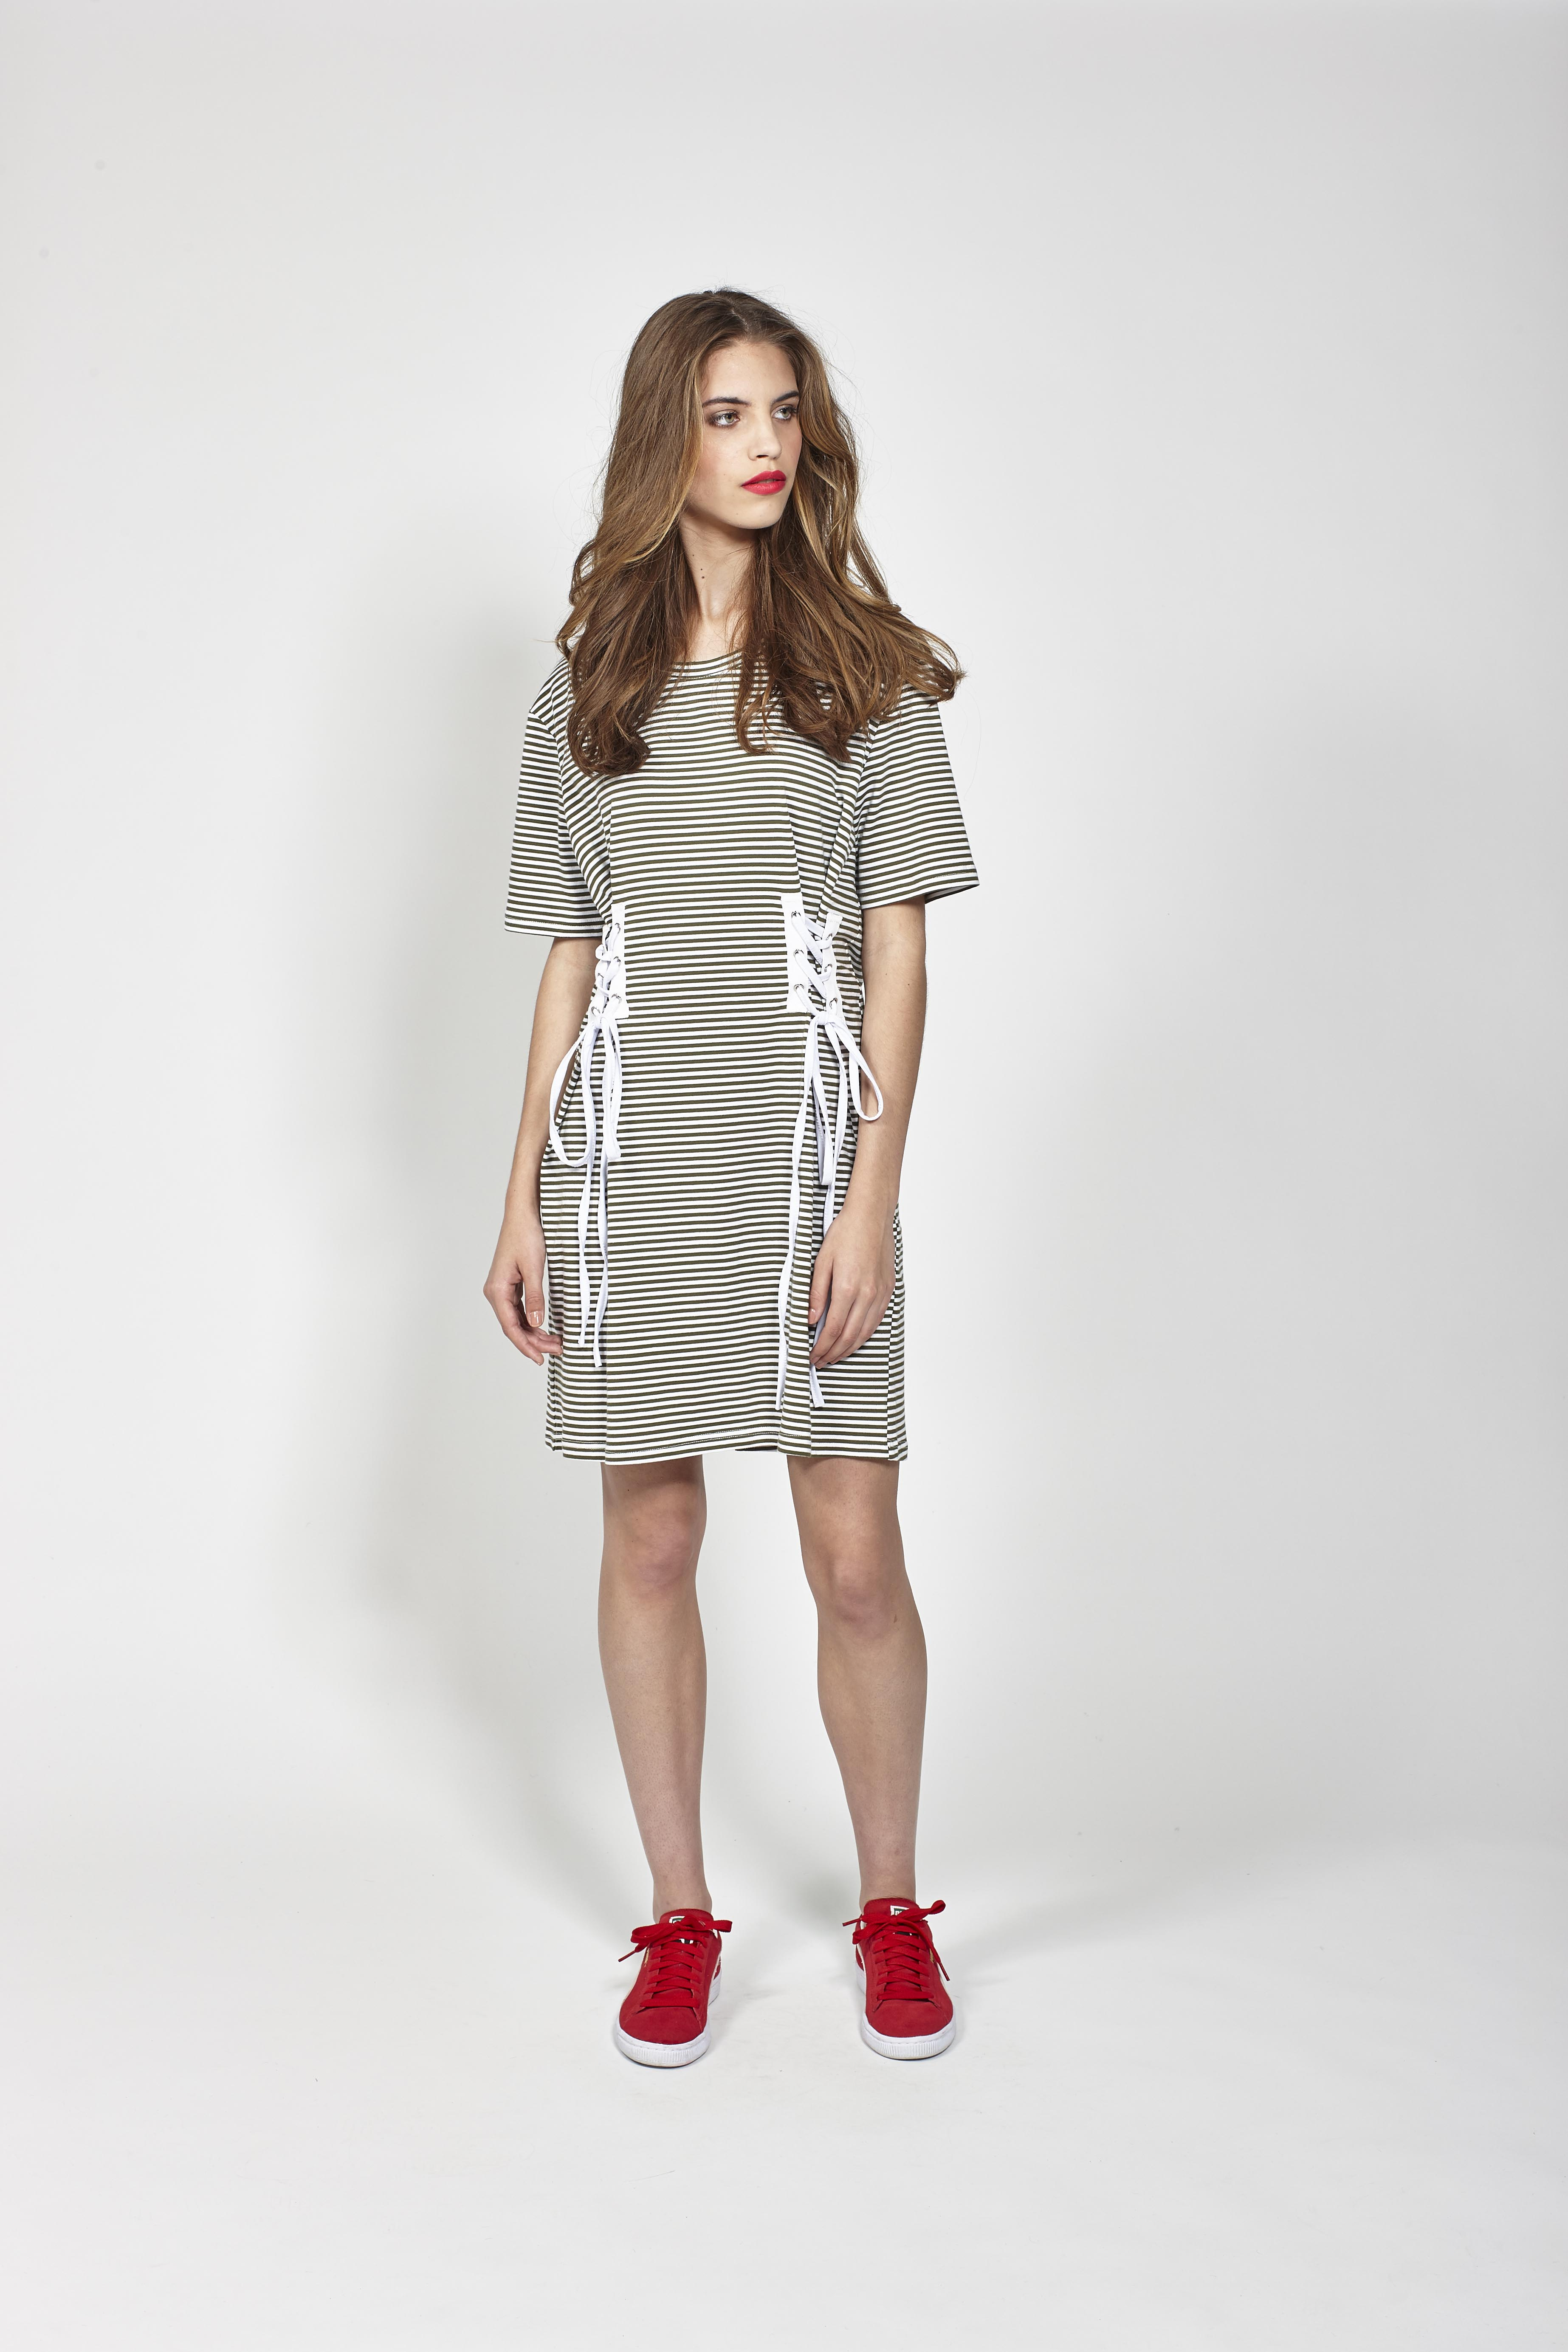 LB1079 LEO+BE Grove Dress, RRP$139.00